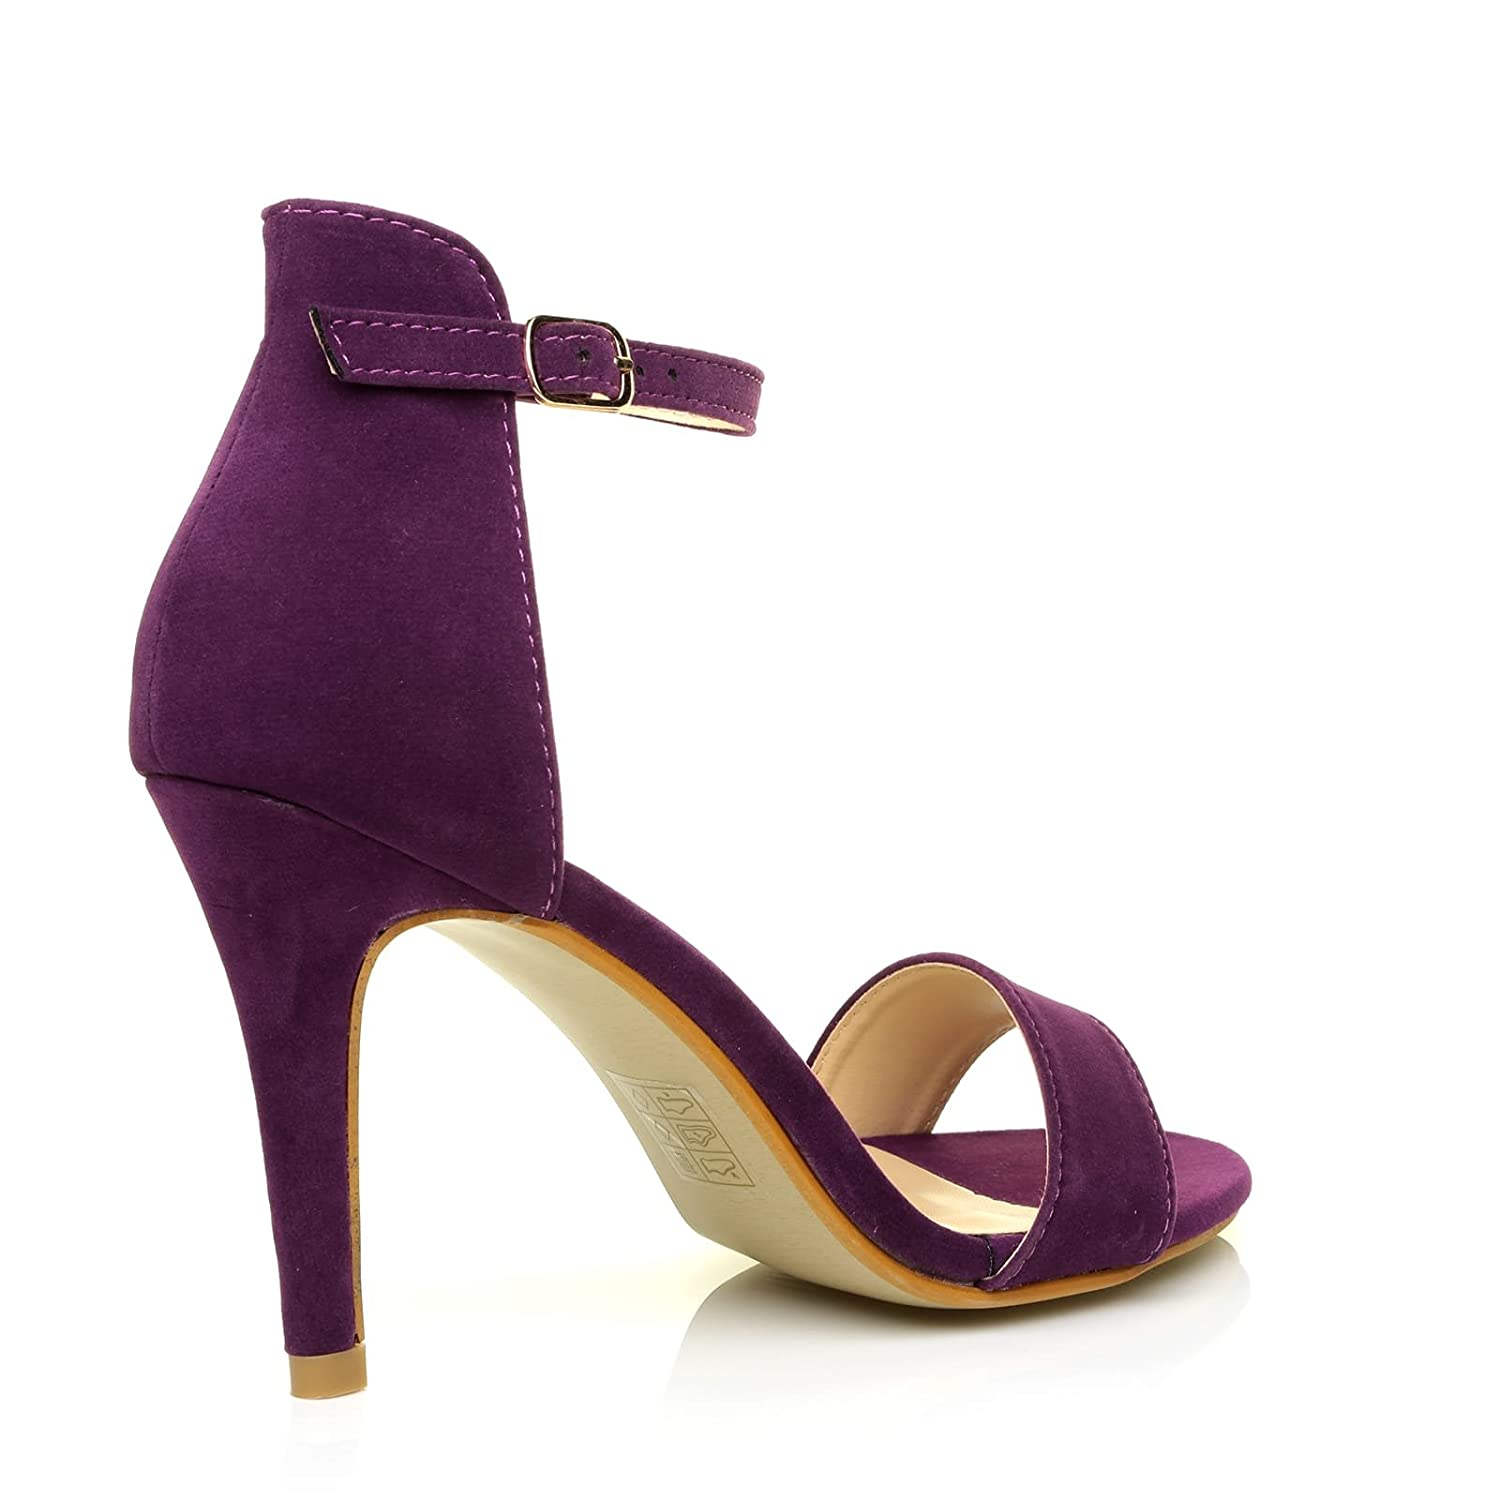 3ab6b4df93 ShuWish UK PAM Purple Suede Ankle Strap Barely There High Heel Sandals:  Amazon.co.uk: Shoes & Bags